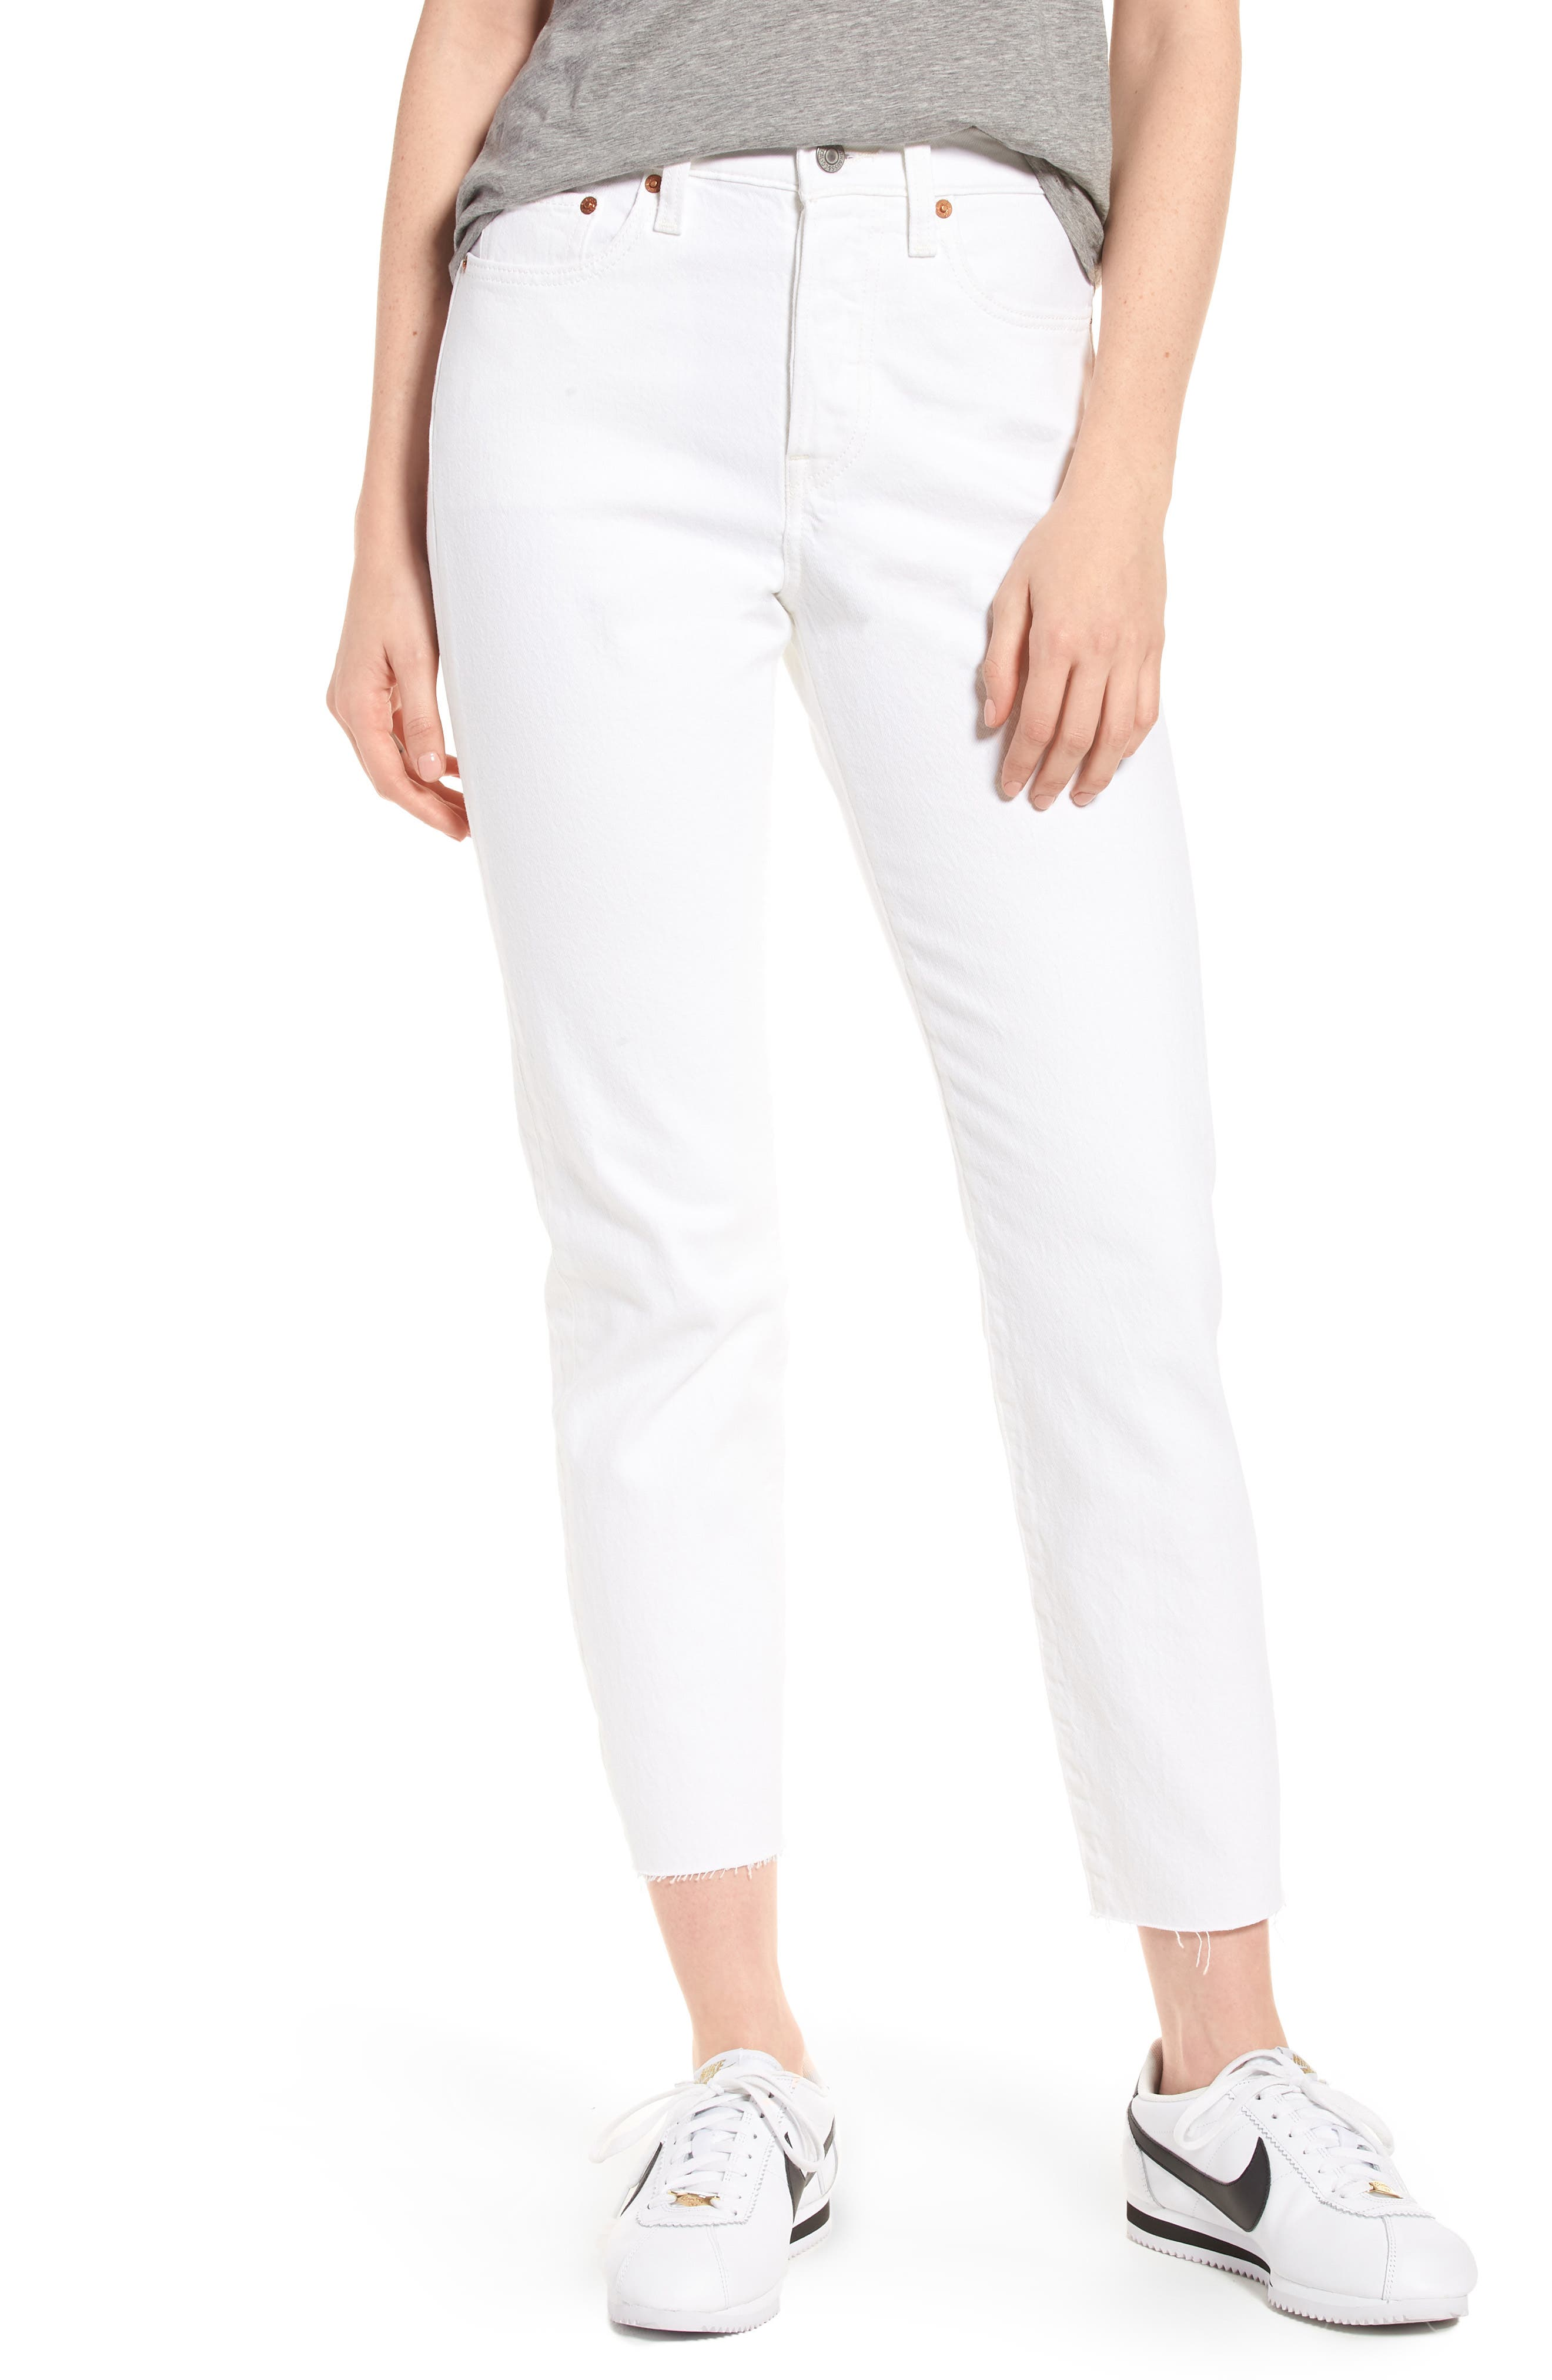 Levi's® Wedgie Icon Fit High Waist Jeans (Above the Clouds)